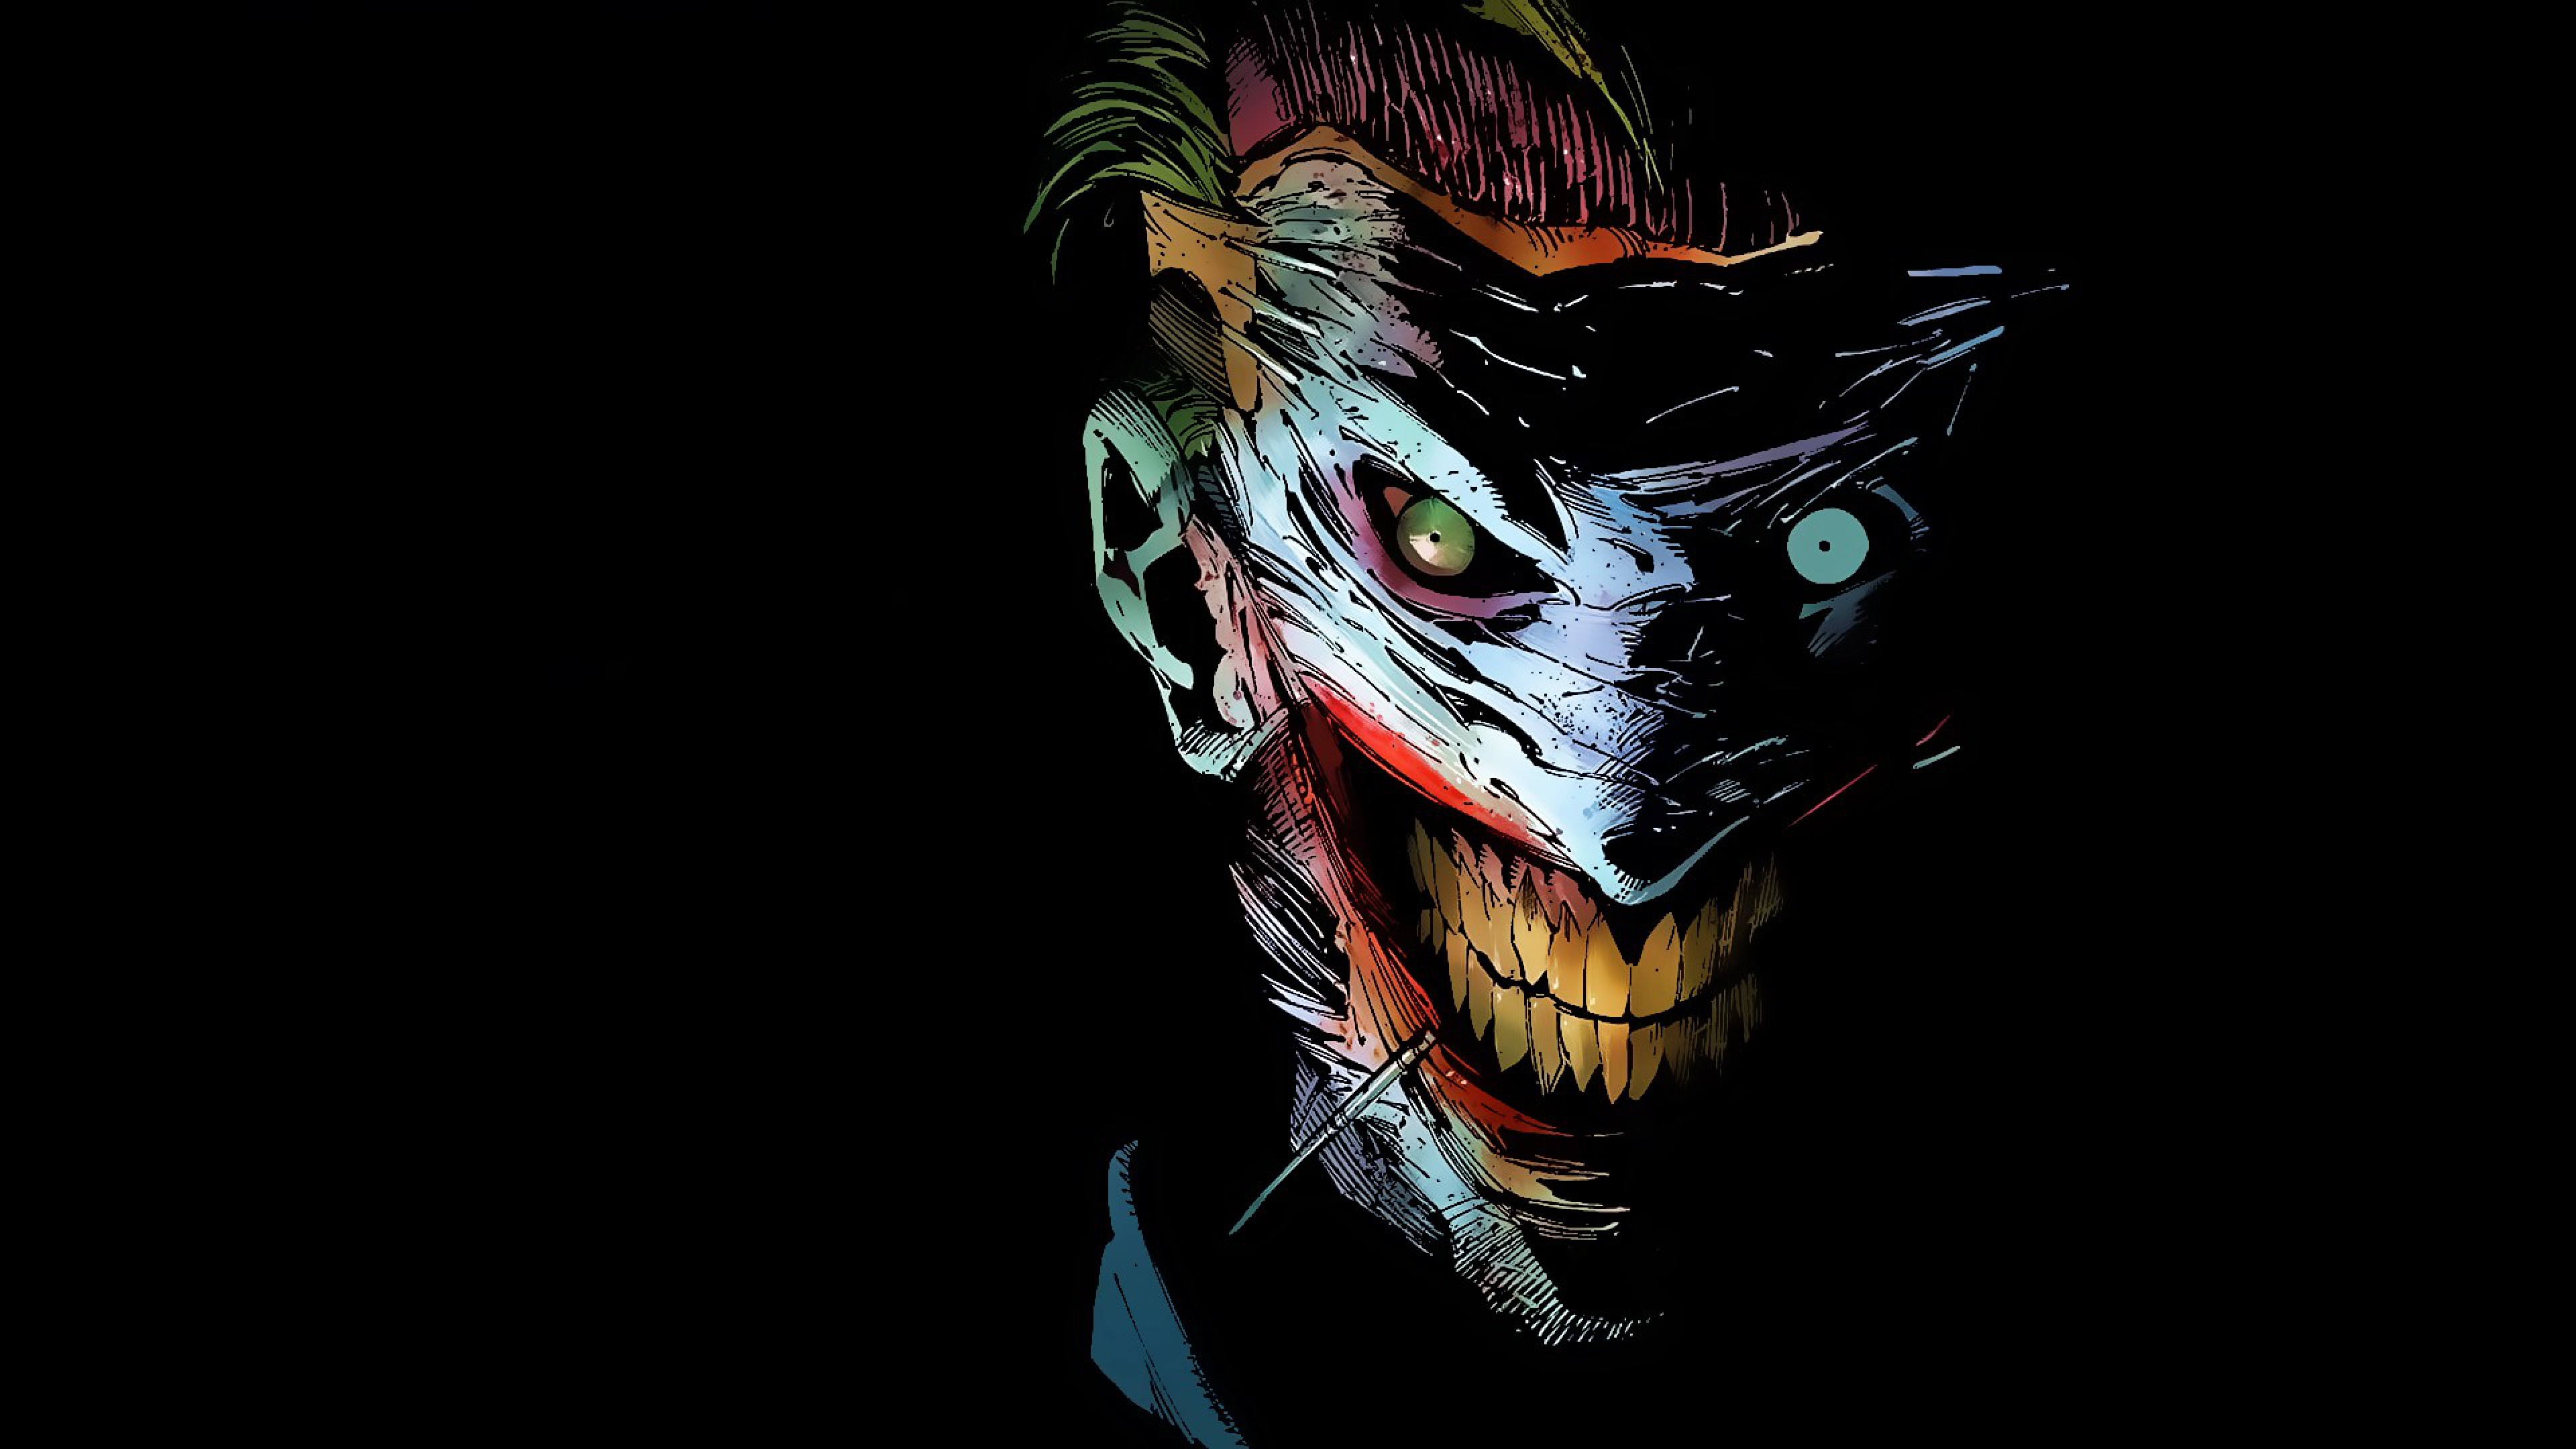 591 Joker Hd Wallpapers Background Images Wallpaper Abyss